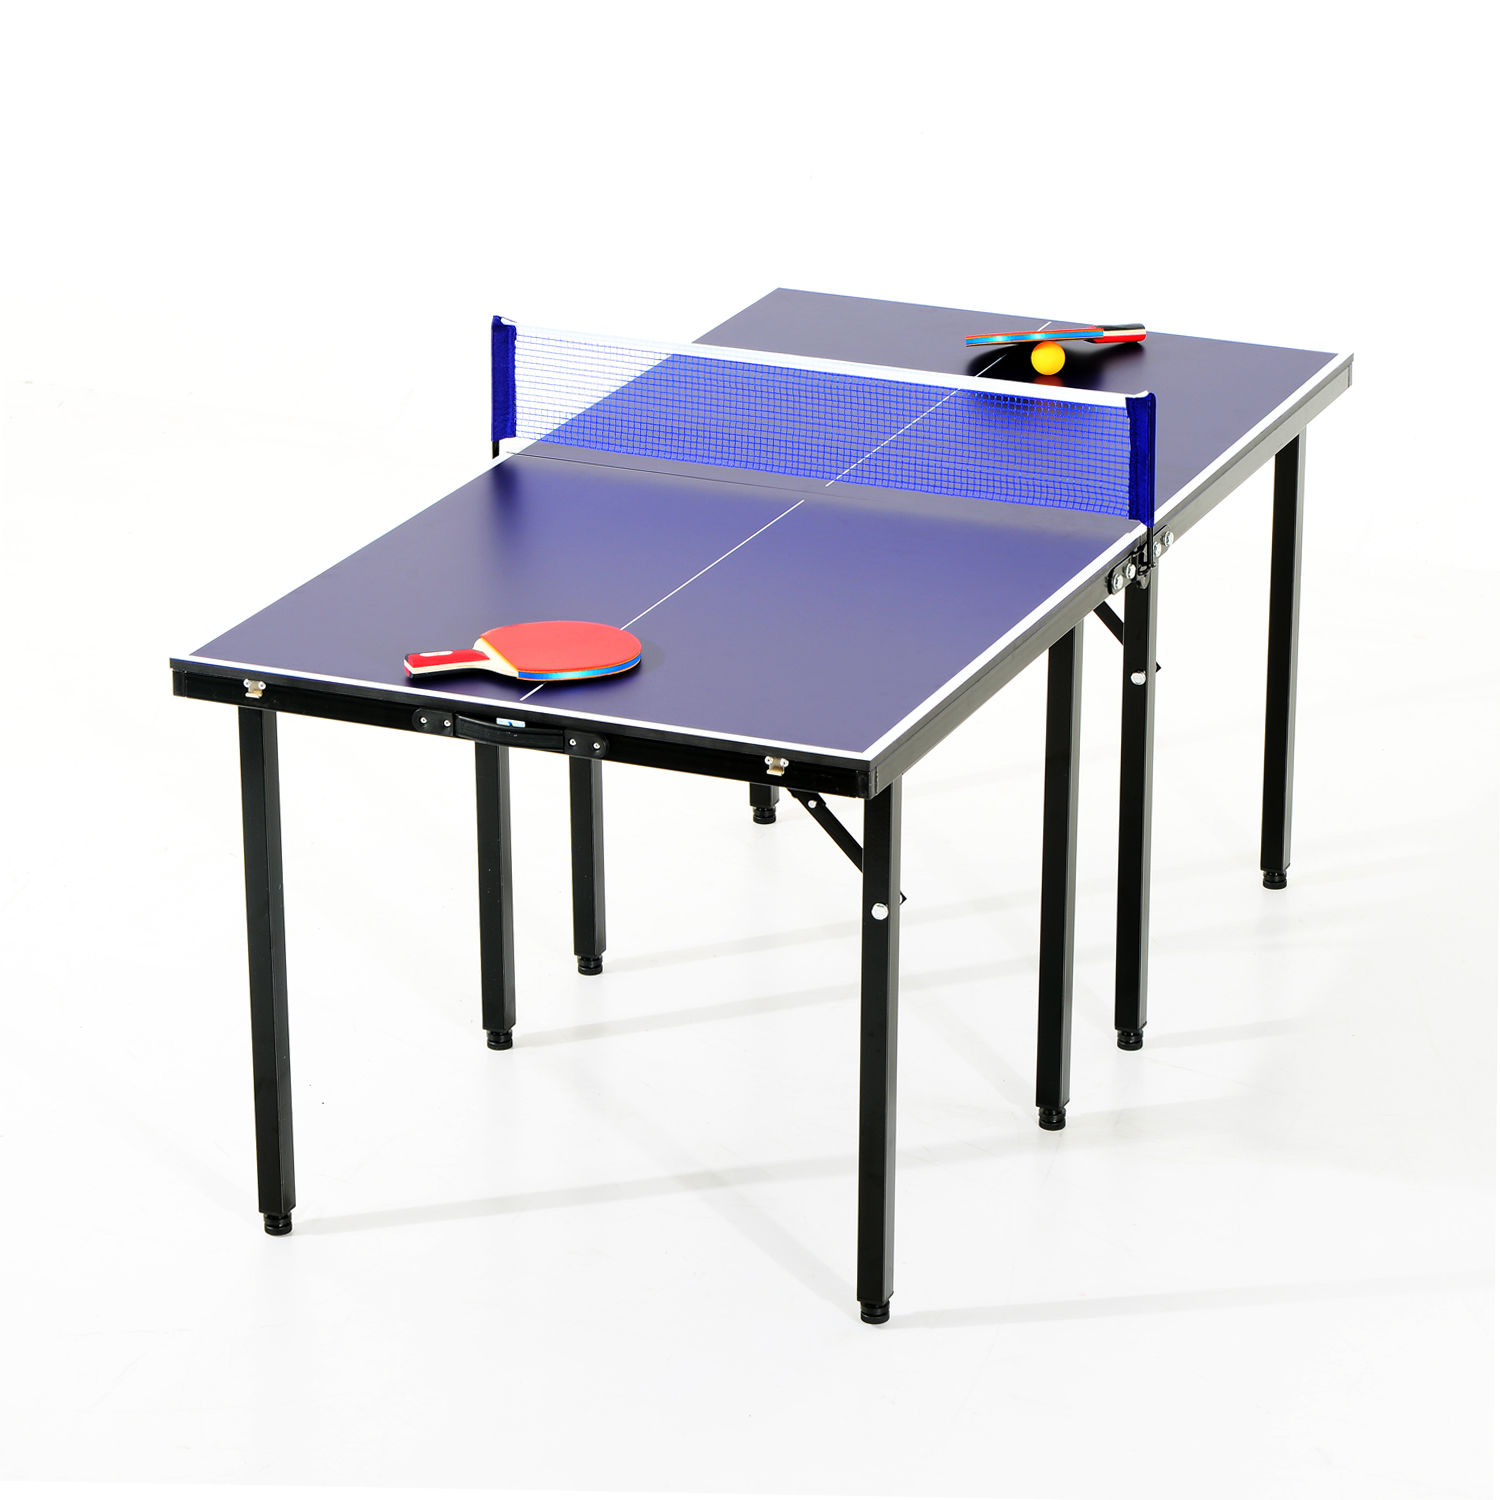 Portable Folding Ping Pong Table Set Tennis Table Indoor Game w/Paddles u0026 Balls  sc 1 st  eBay & Portable Folding Ping Pong Table Set Tennis Table Indoor Game w ...